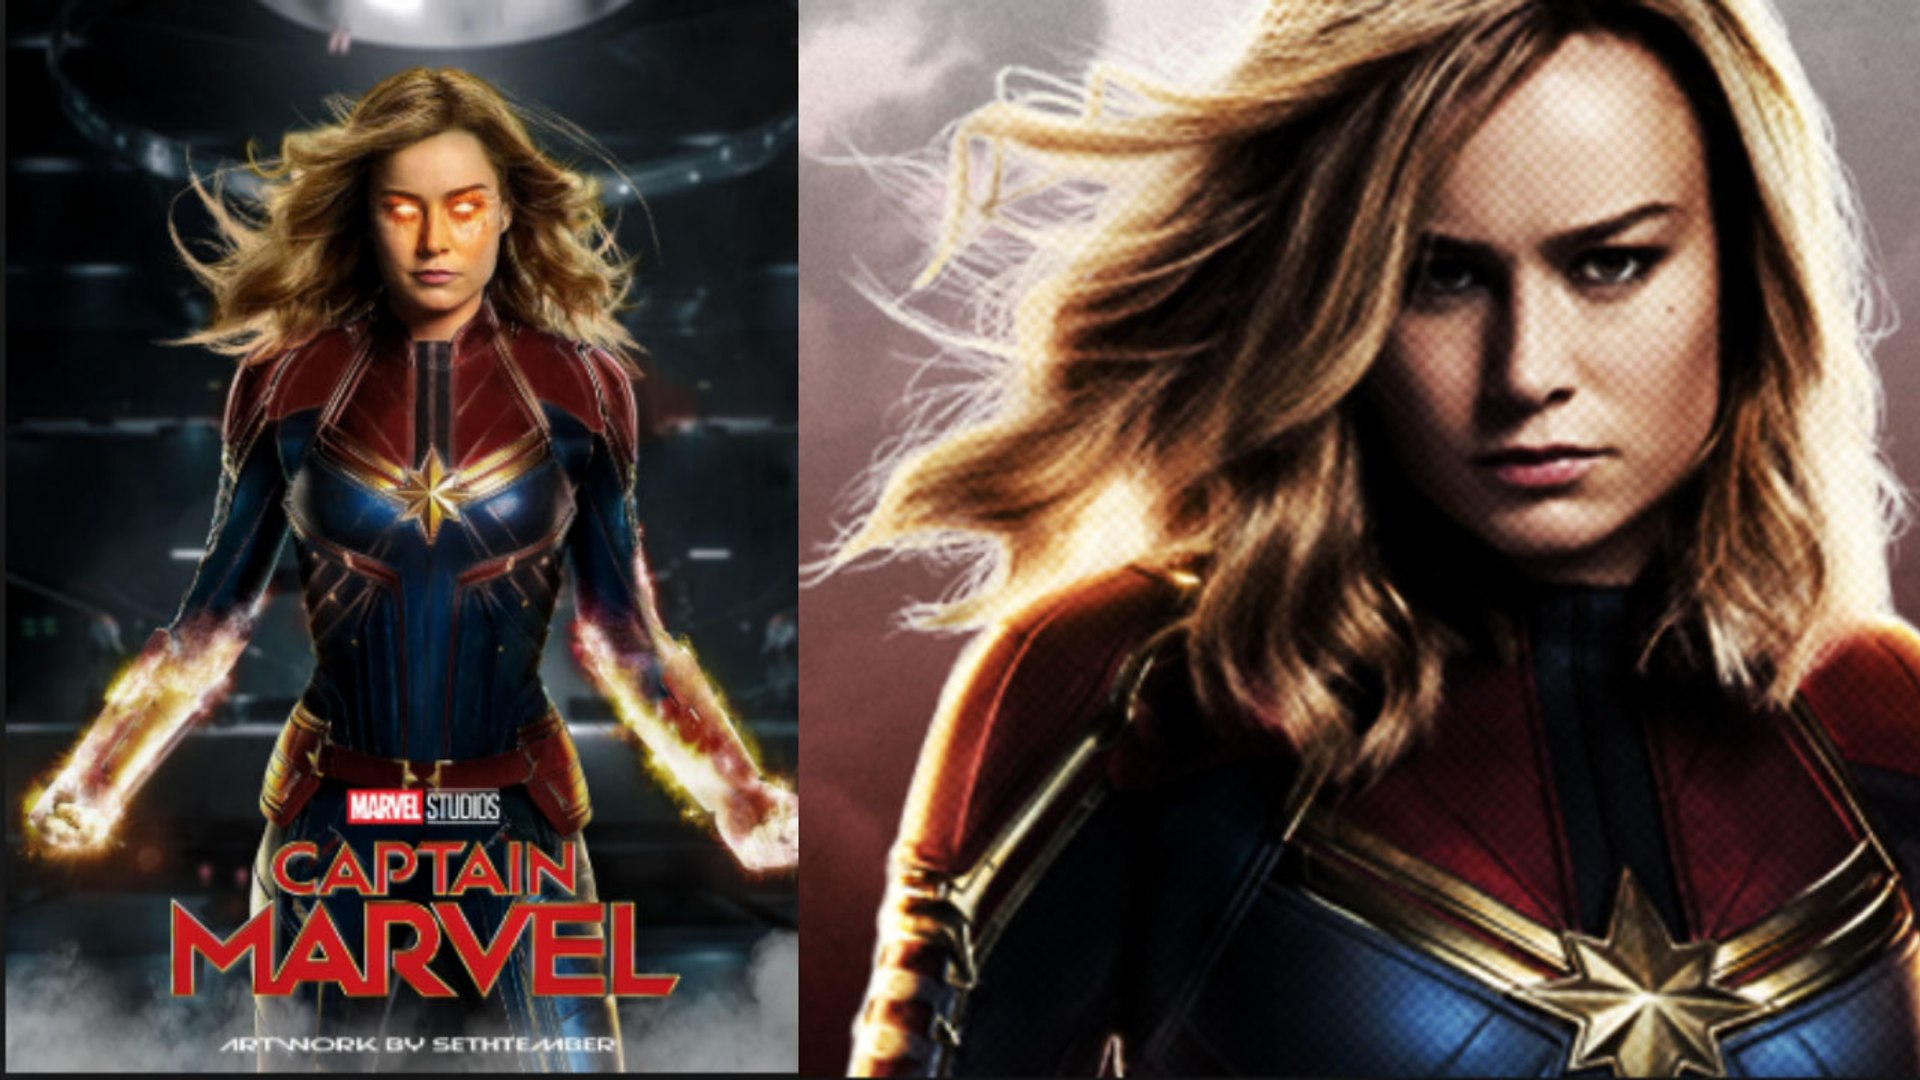 captain marvel gets leaked online for free downloadtamilrockers |  filmibeat